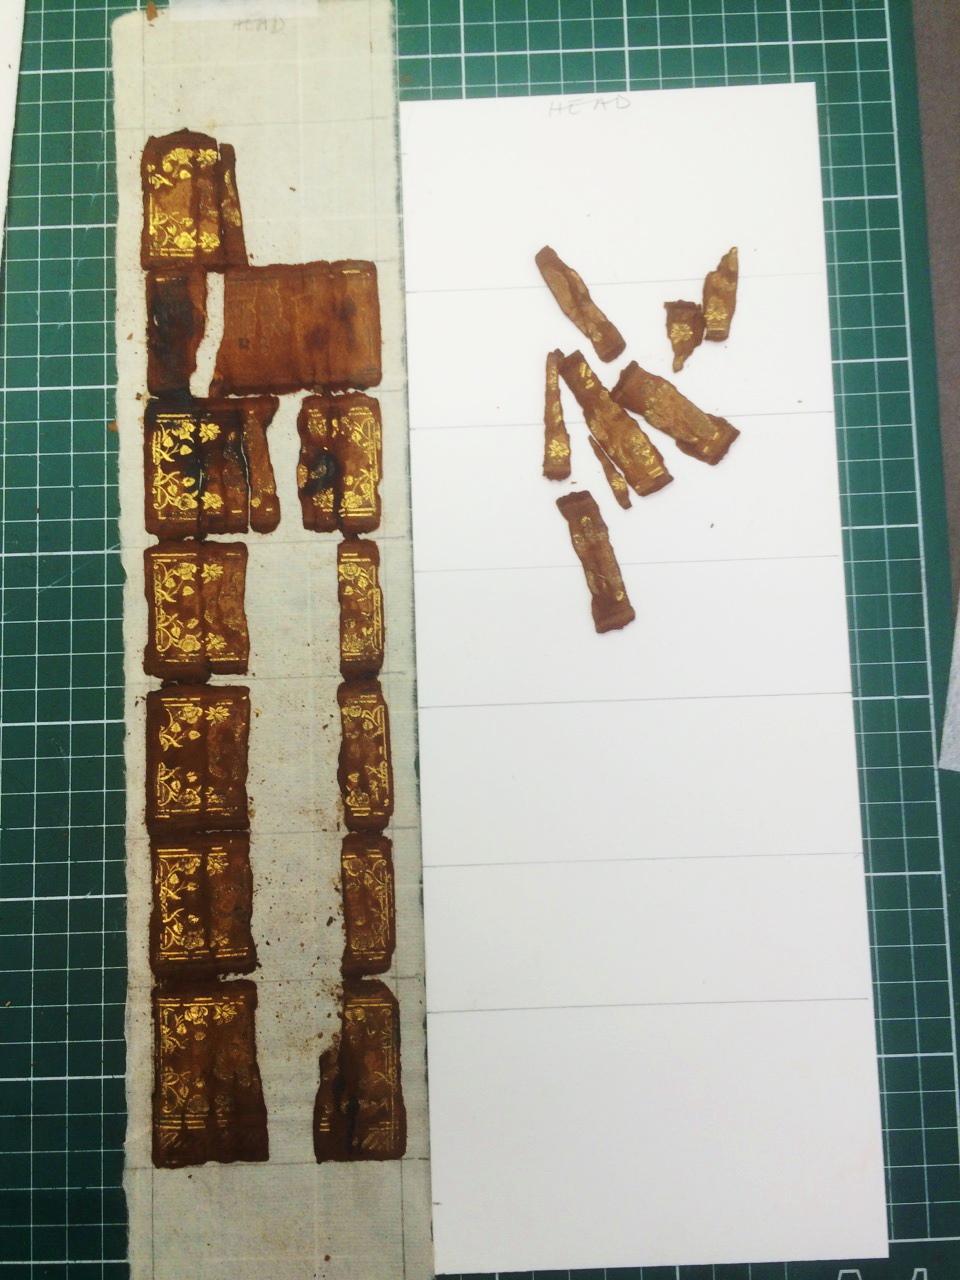 Spine of book in pieces